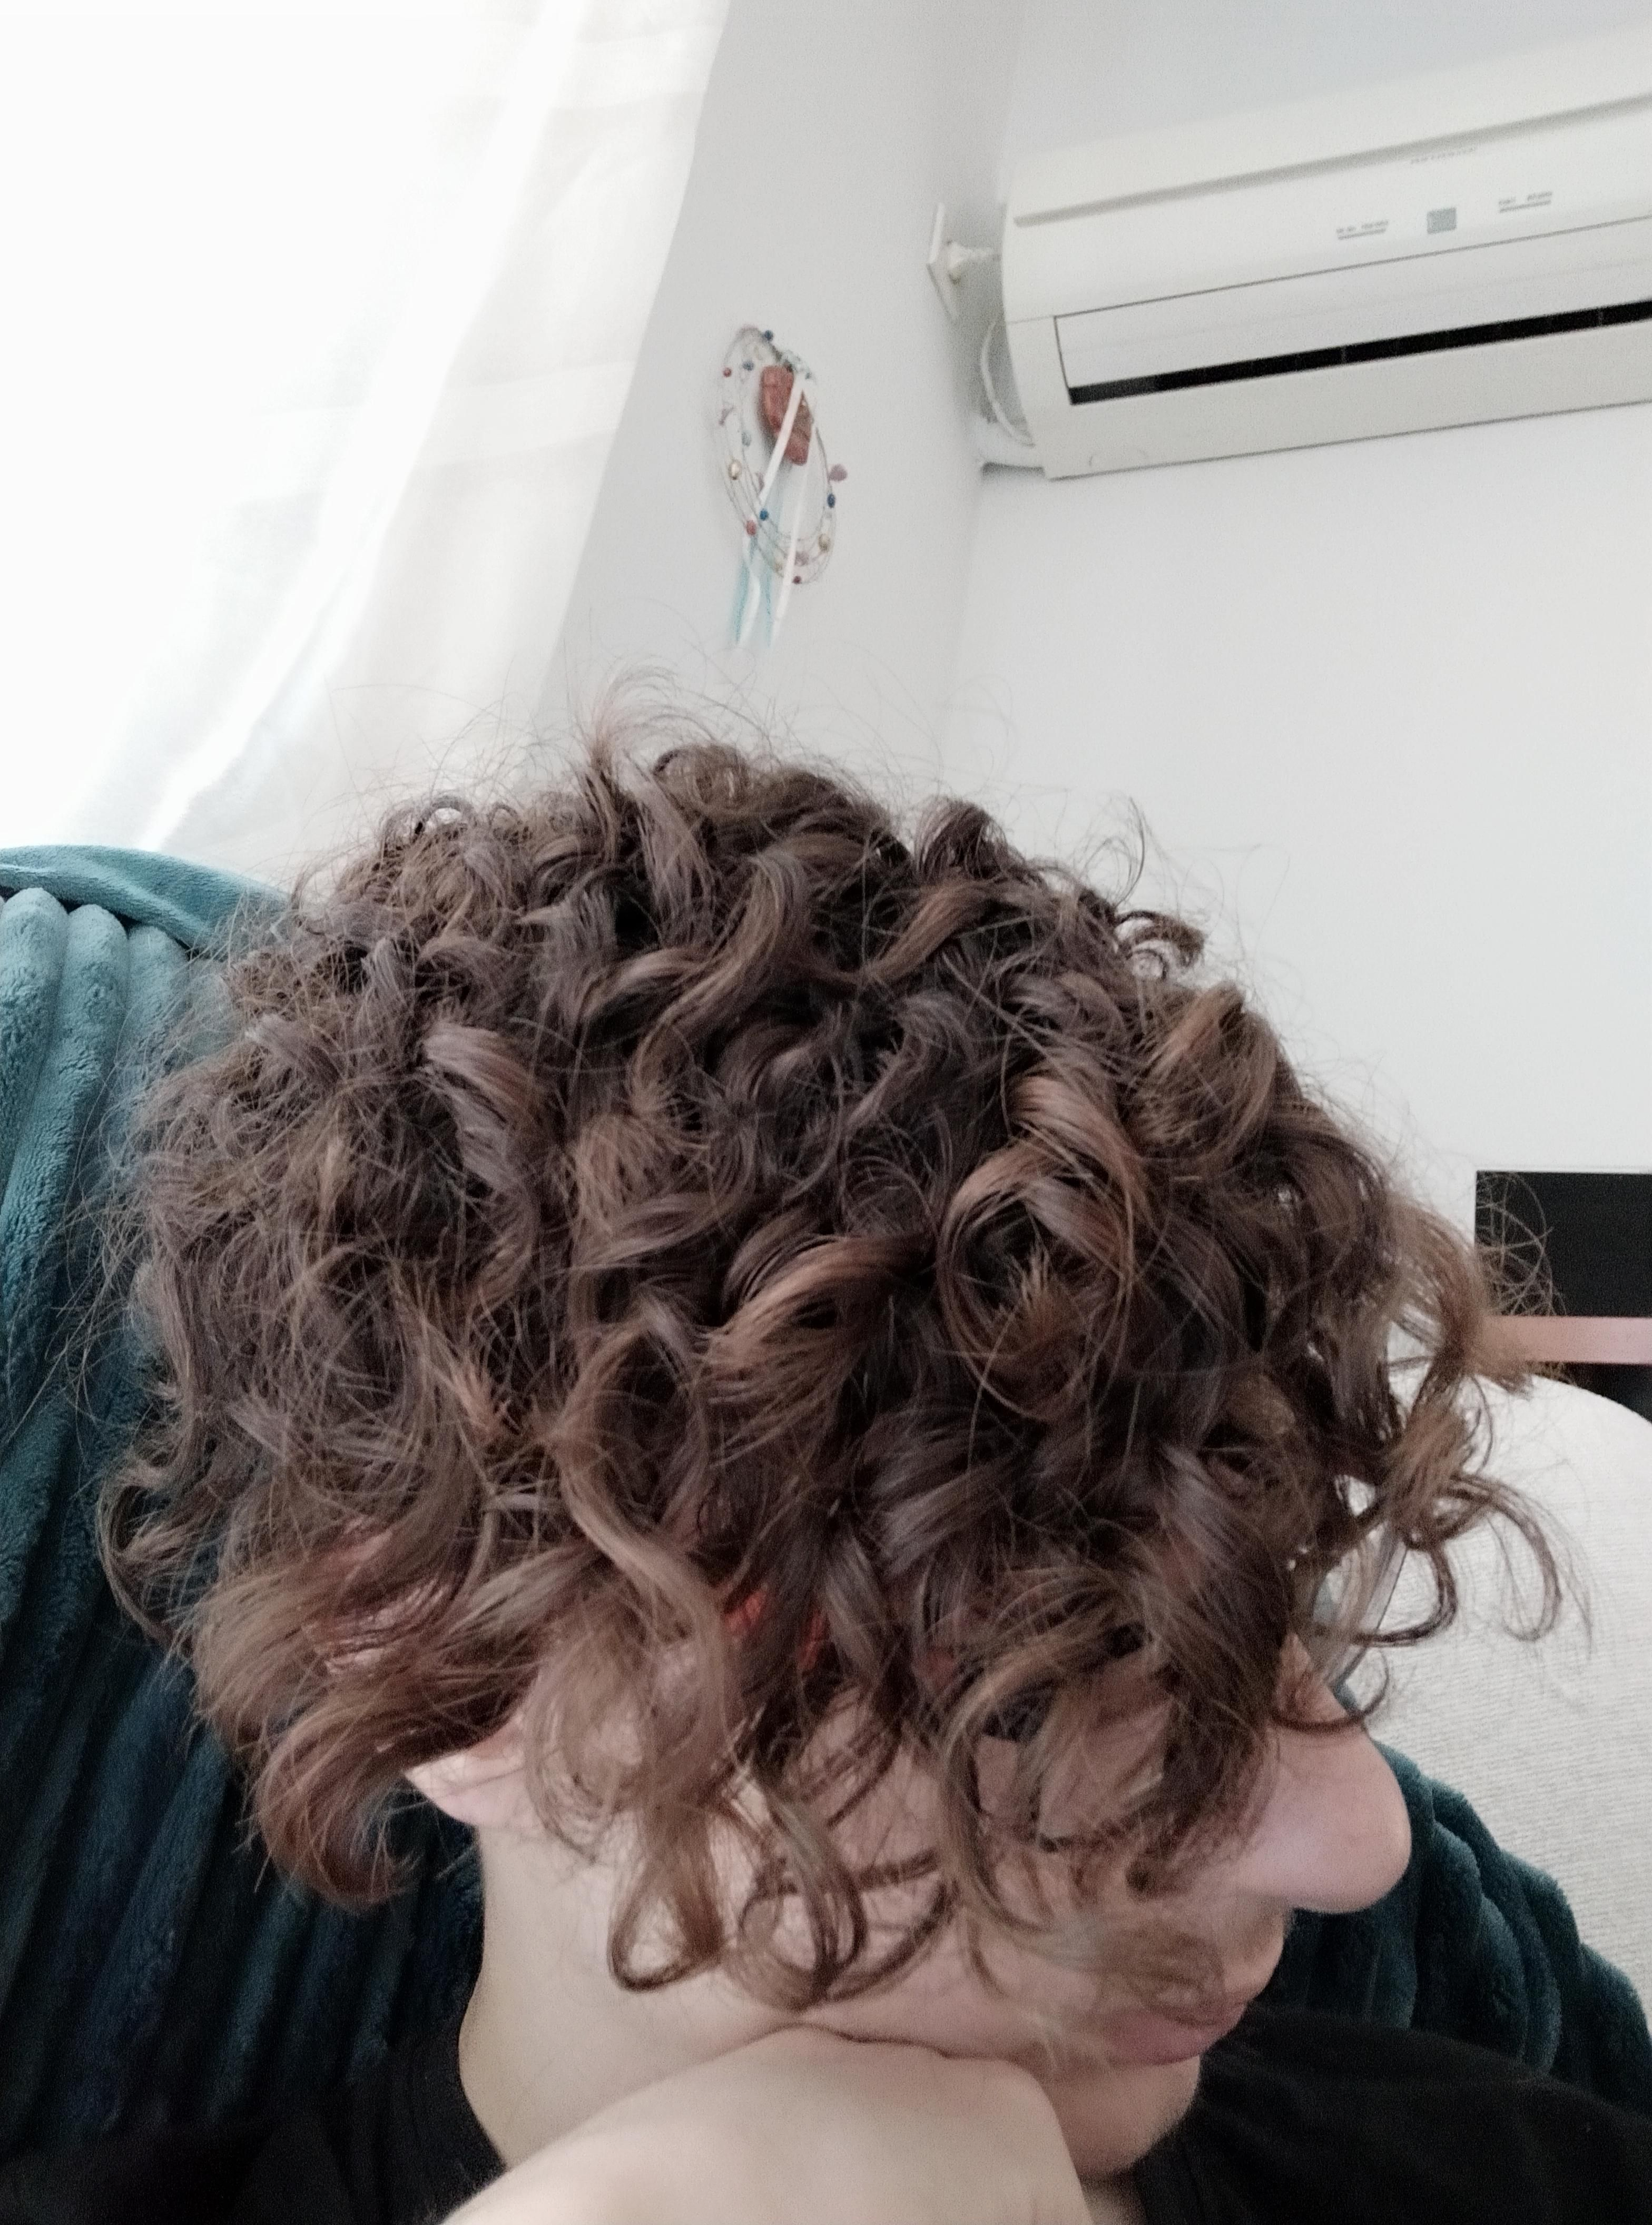 Can i blowdry my thin hair without getting volume if no